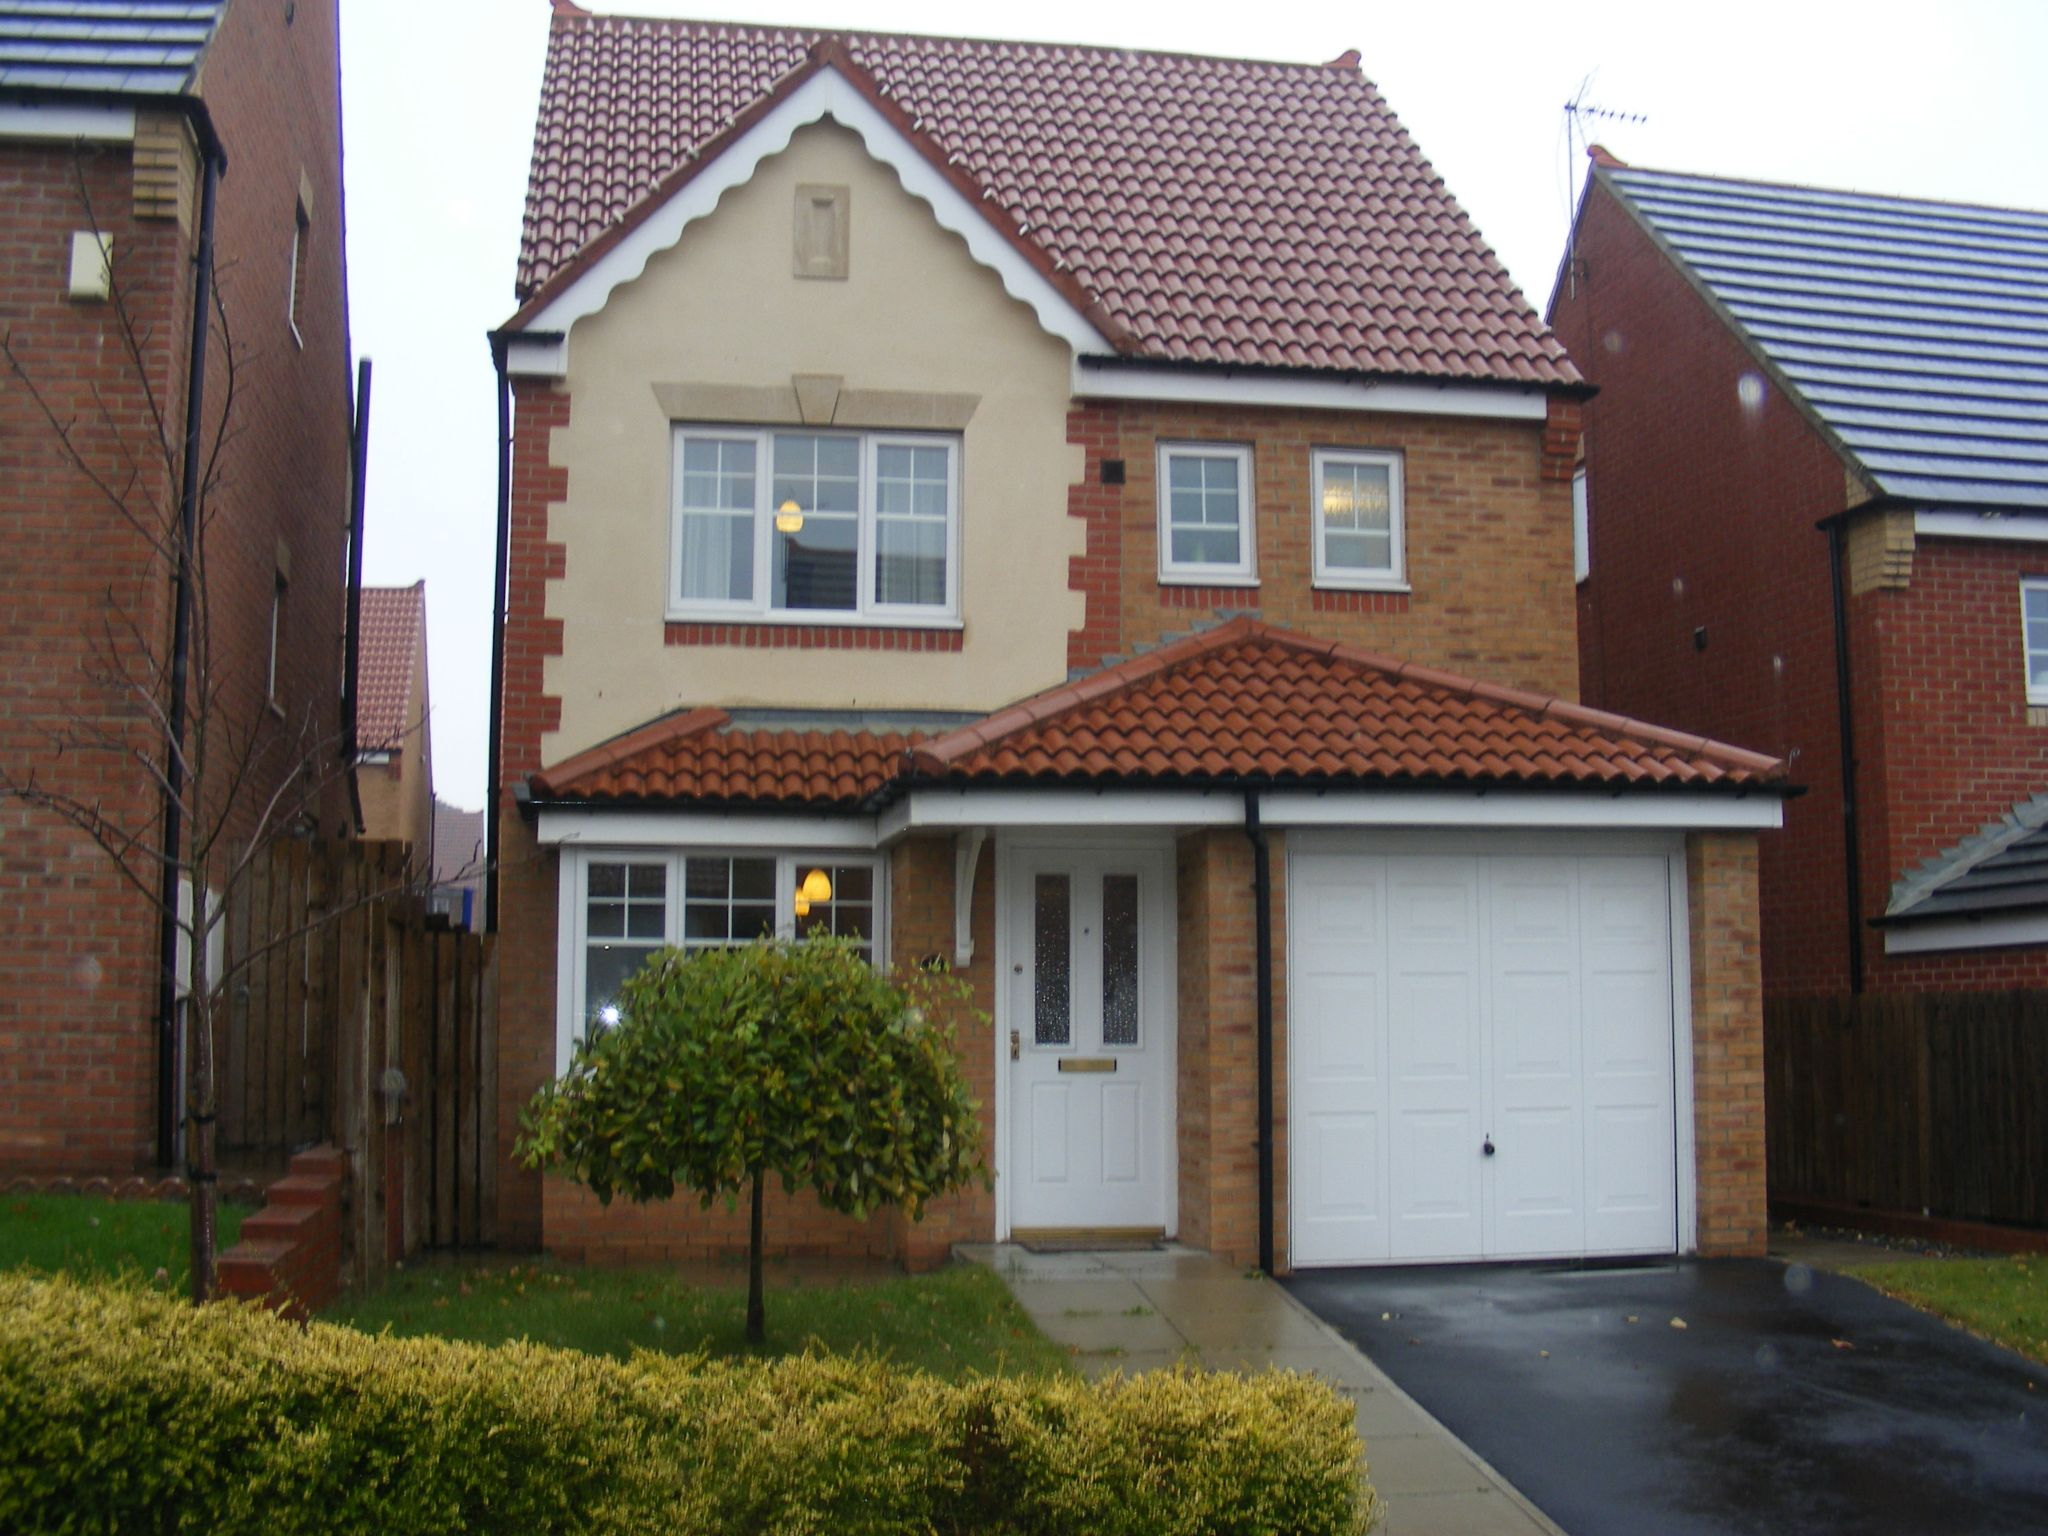 4 bedroom detached house SSTC in Bishop Auckland - Property photograph.